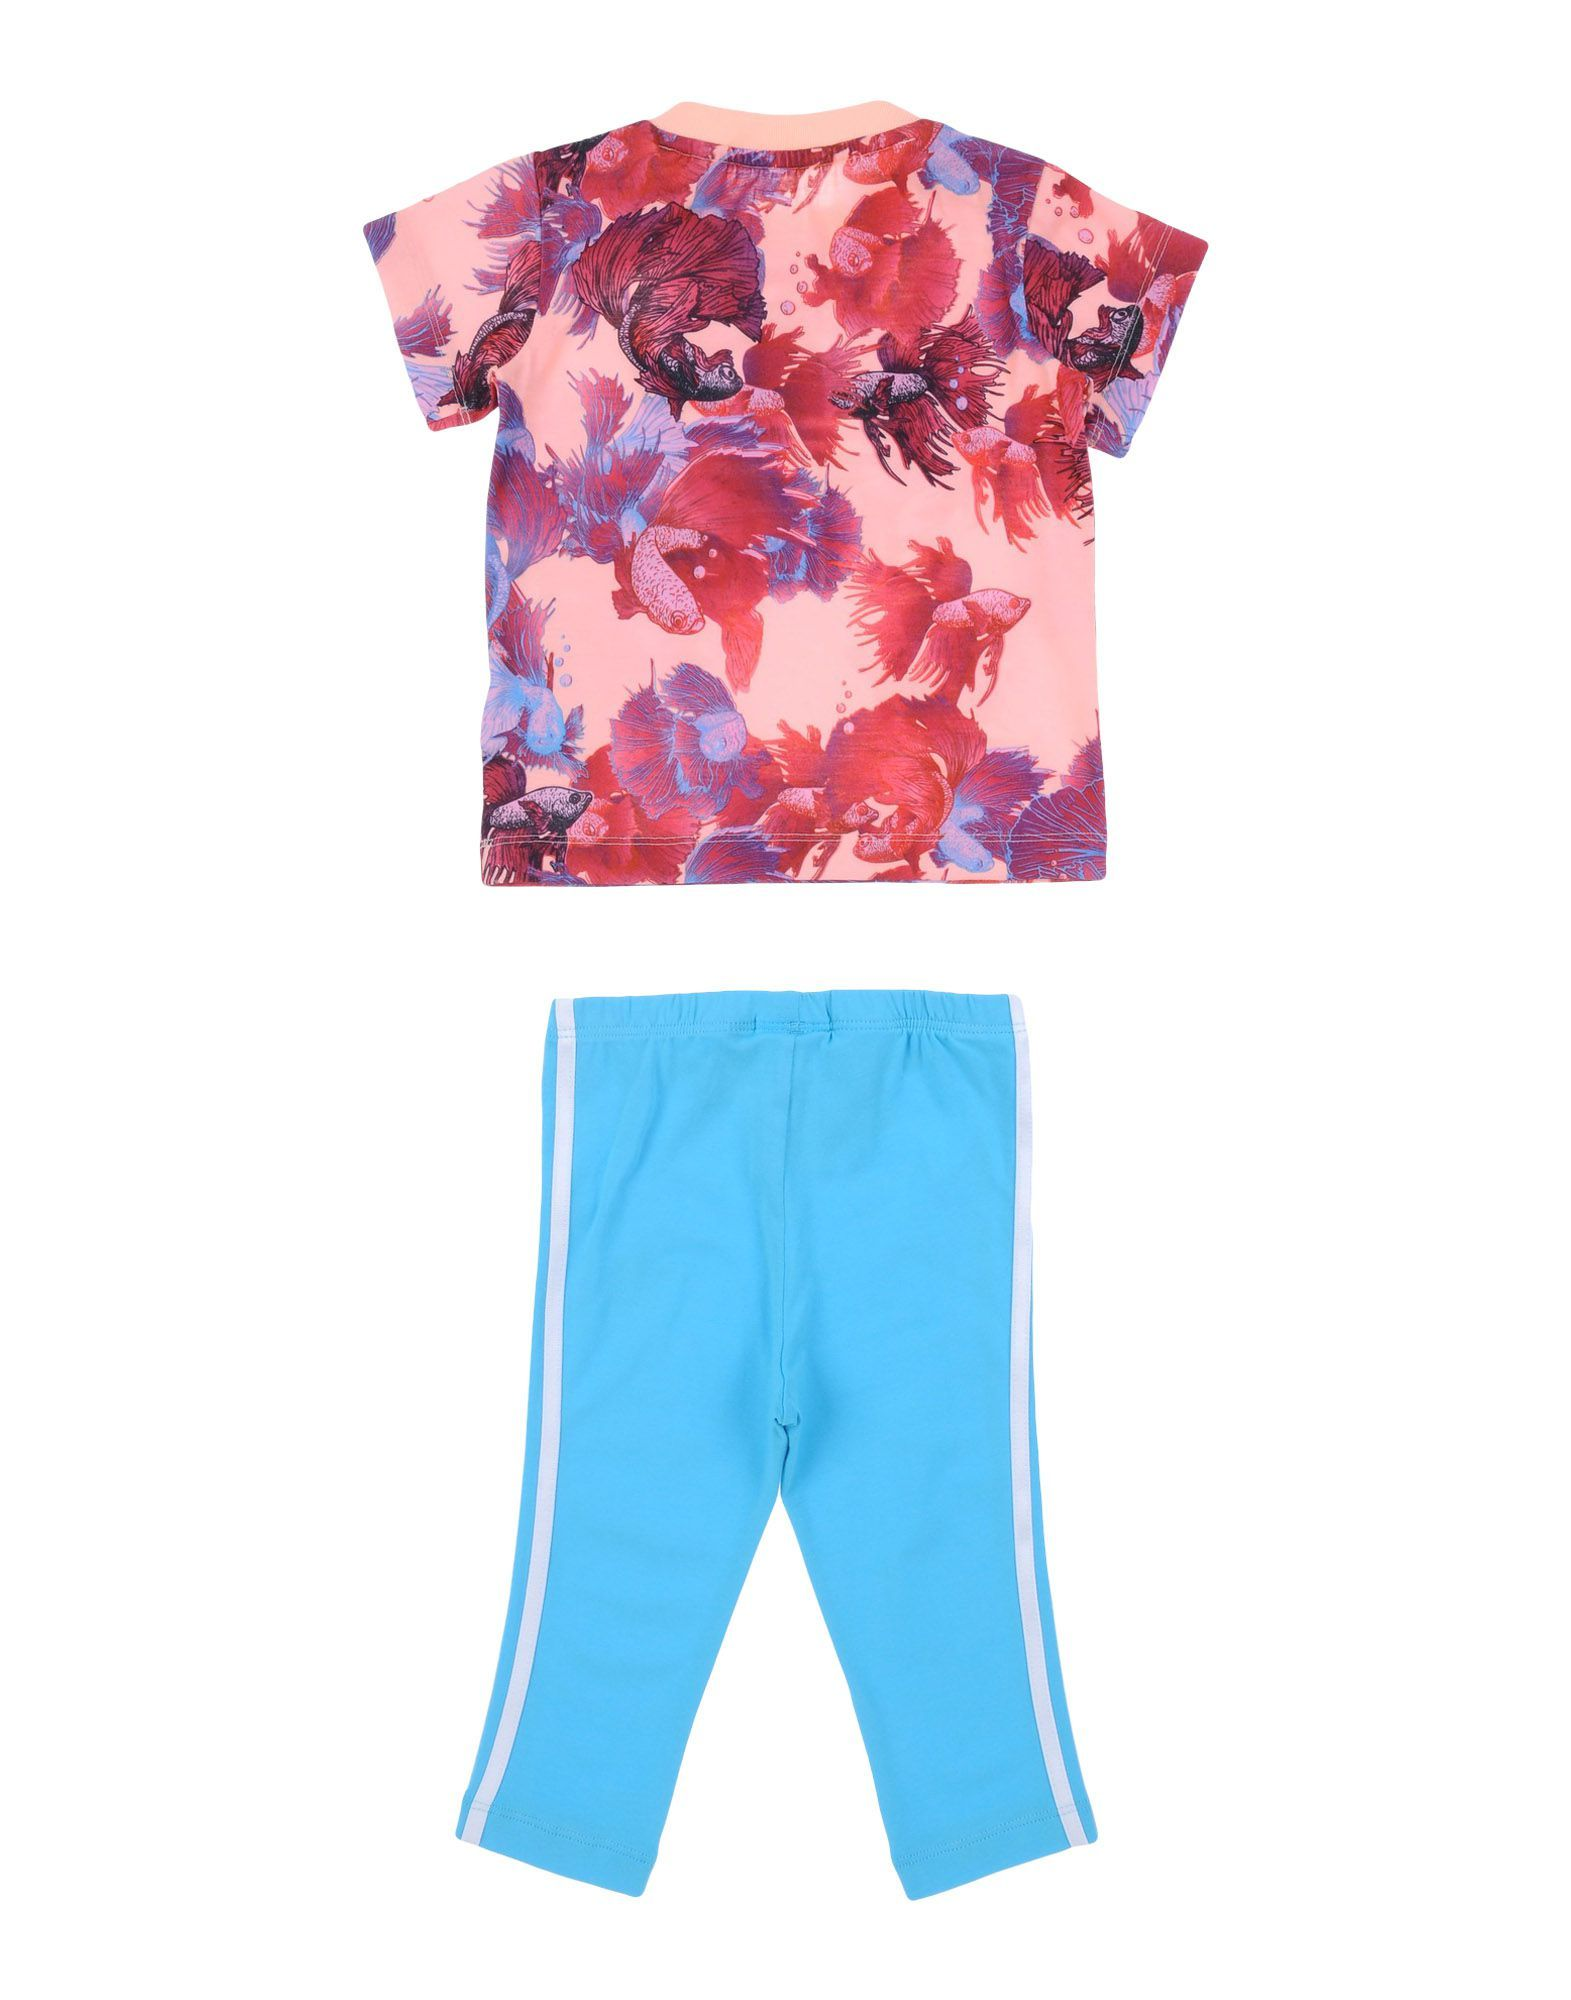 Adidas Originals Pink & Blue Set